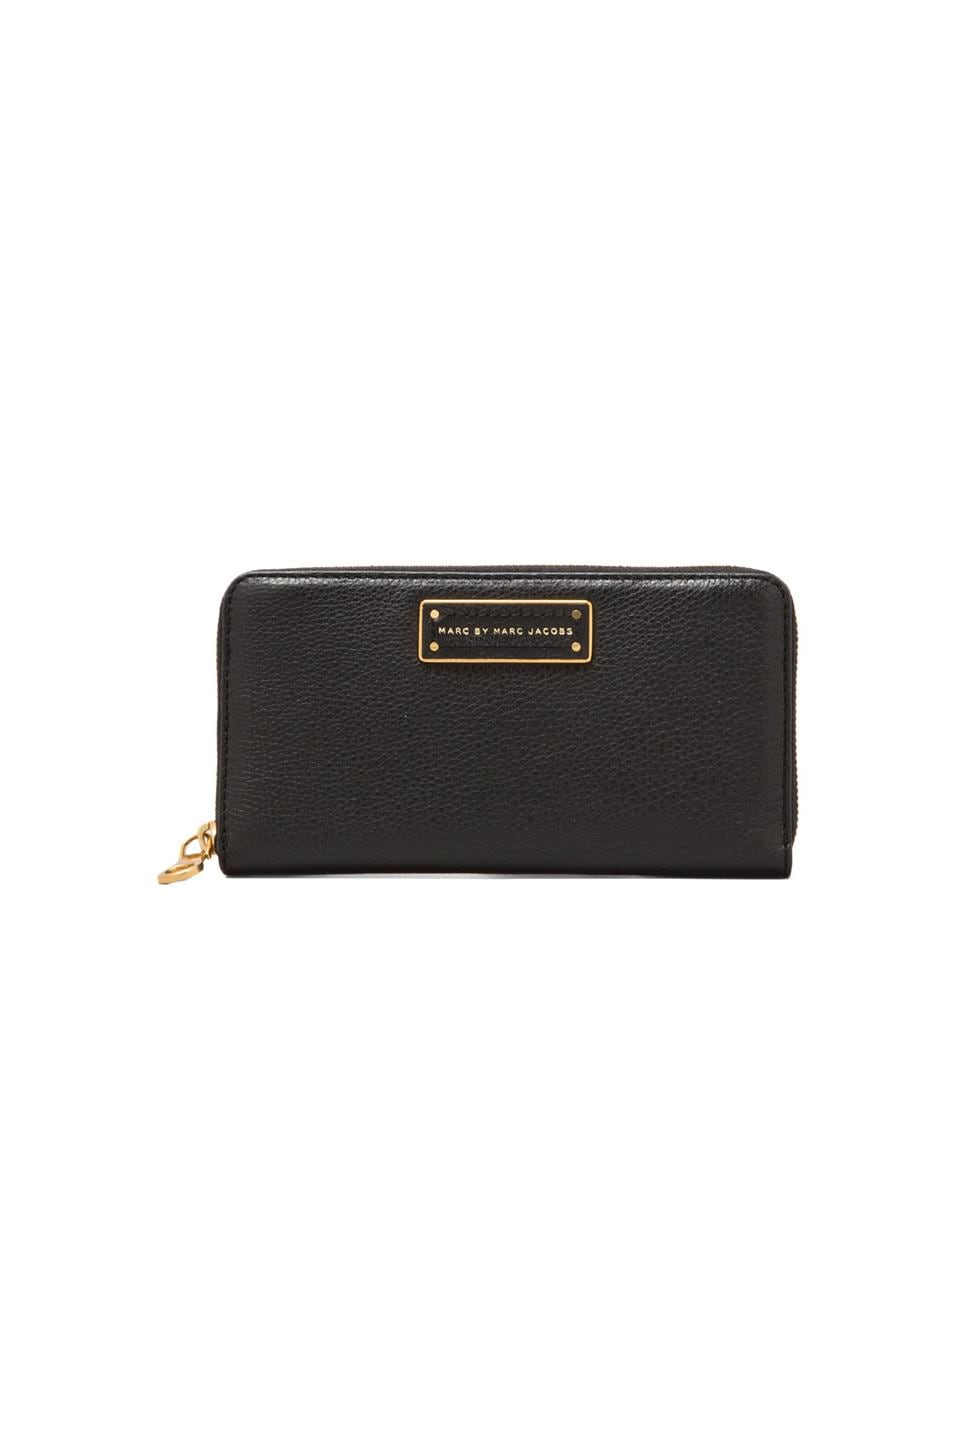 Marc by Marc Jacobs Too Hot to Handle Large Zip Around in Black